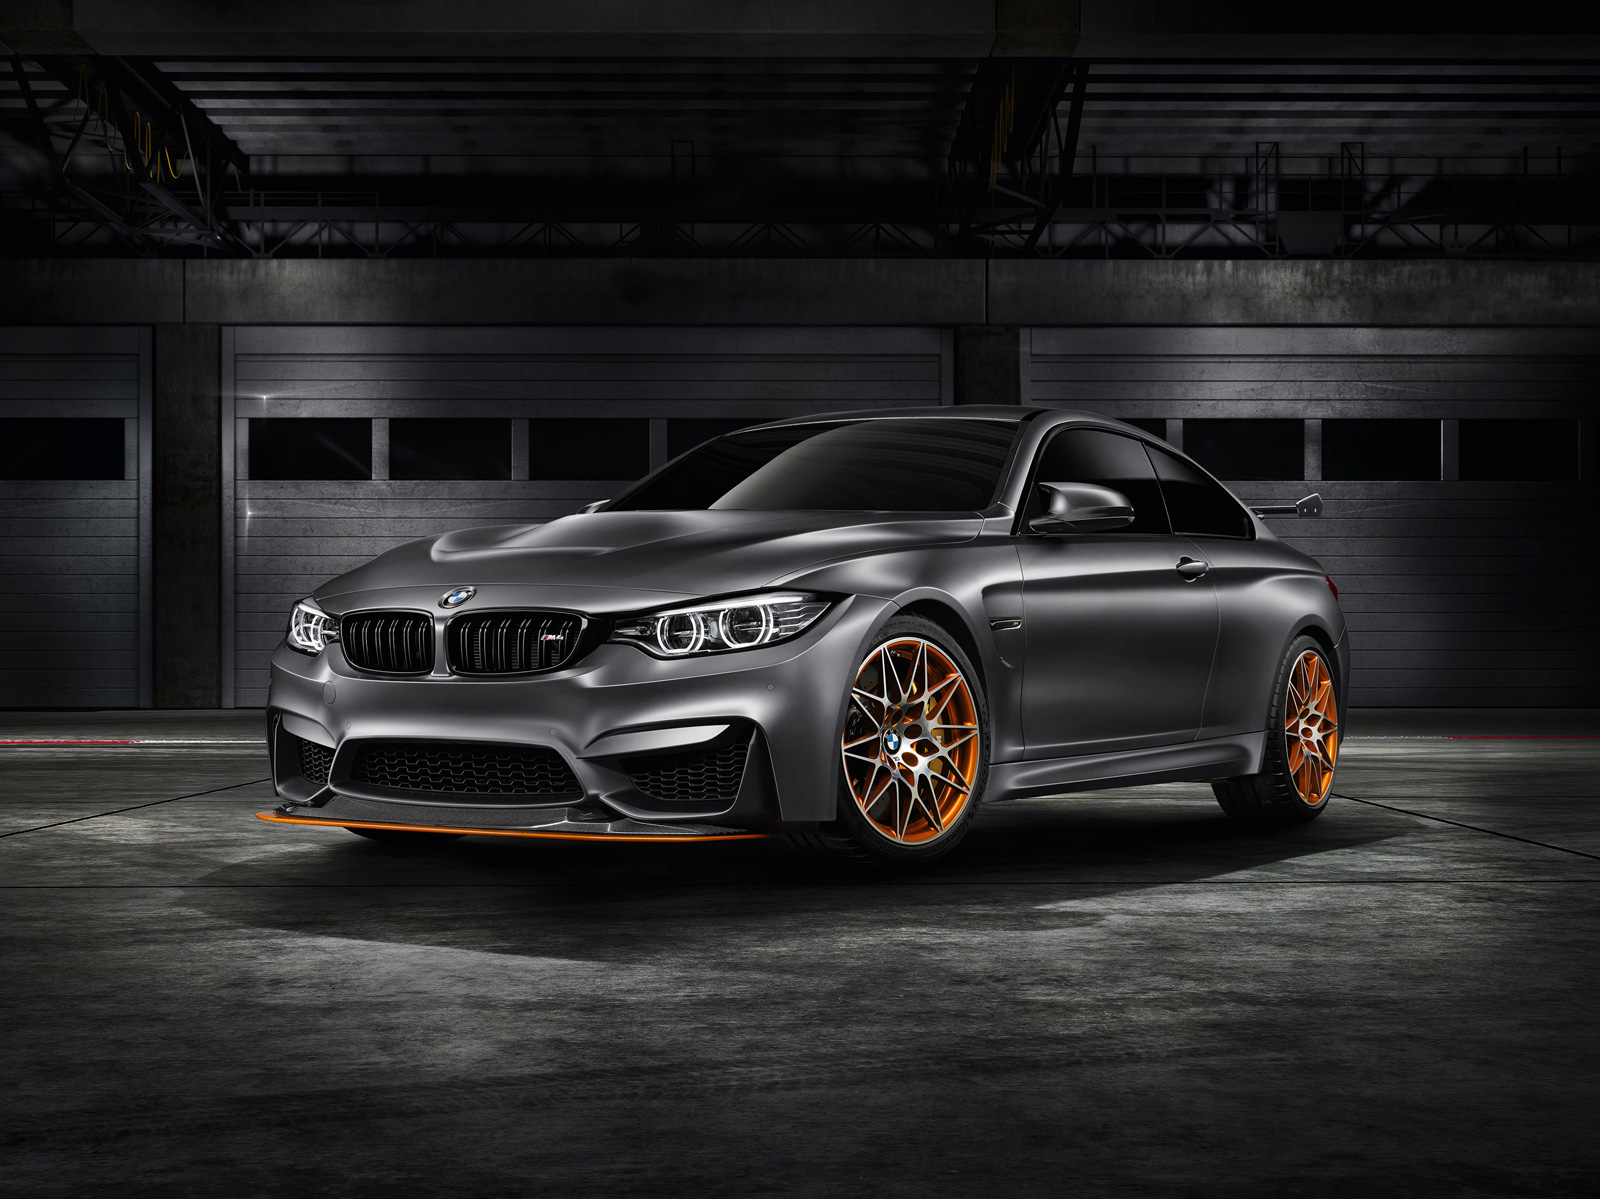 bmw m4 gts concept revealed bmw m5 forum and m6 forums. Black Bedroom Furniture Sets. Home Design Ideas